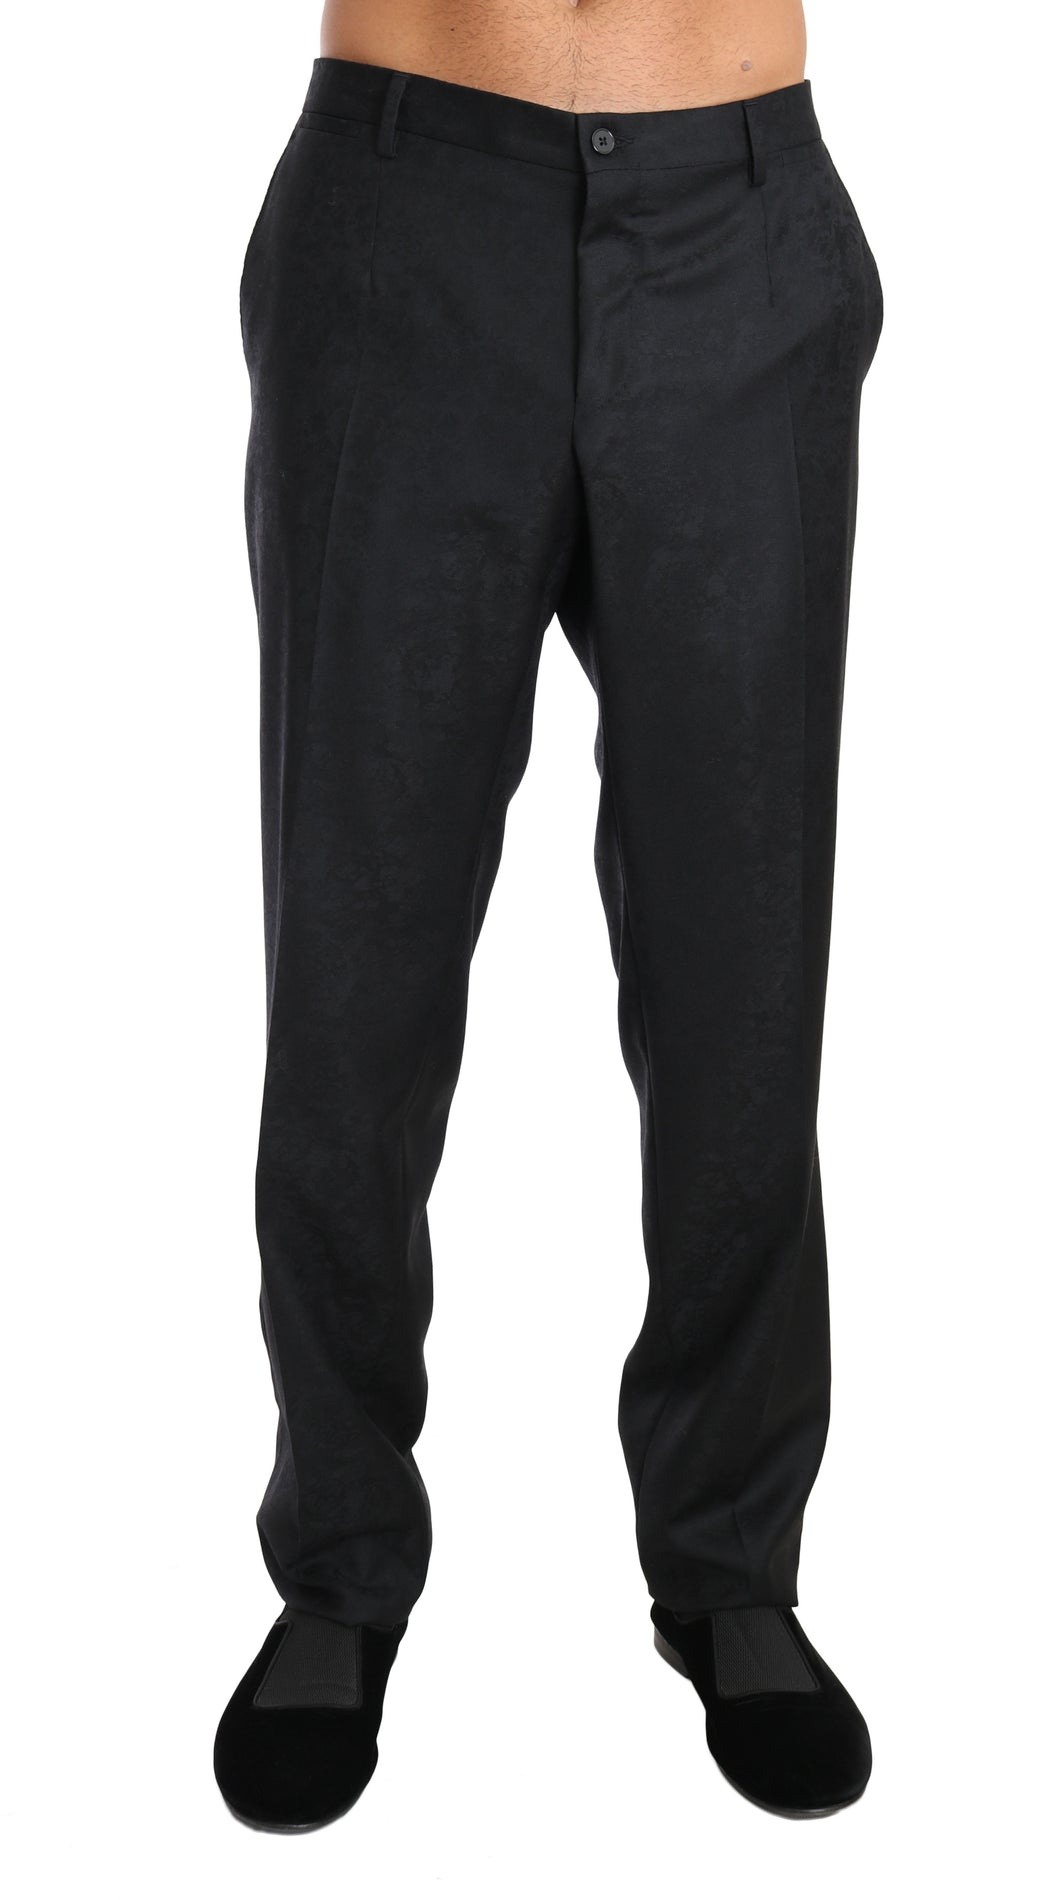 Gray Cotton Patterned Formal Trousers